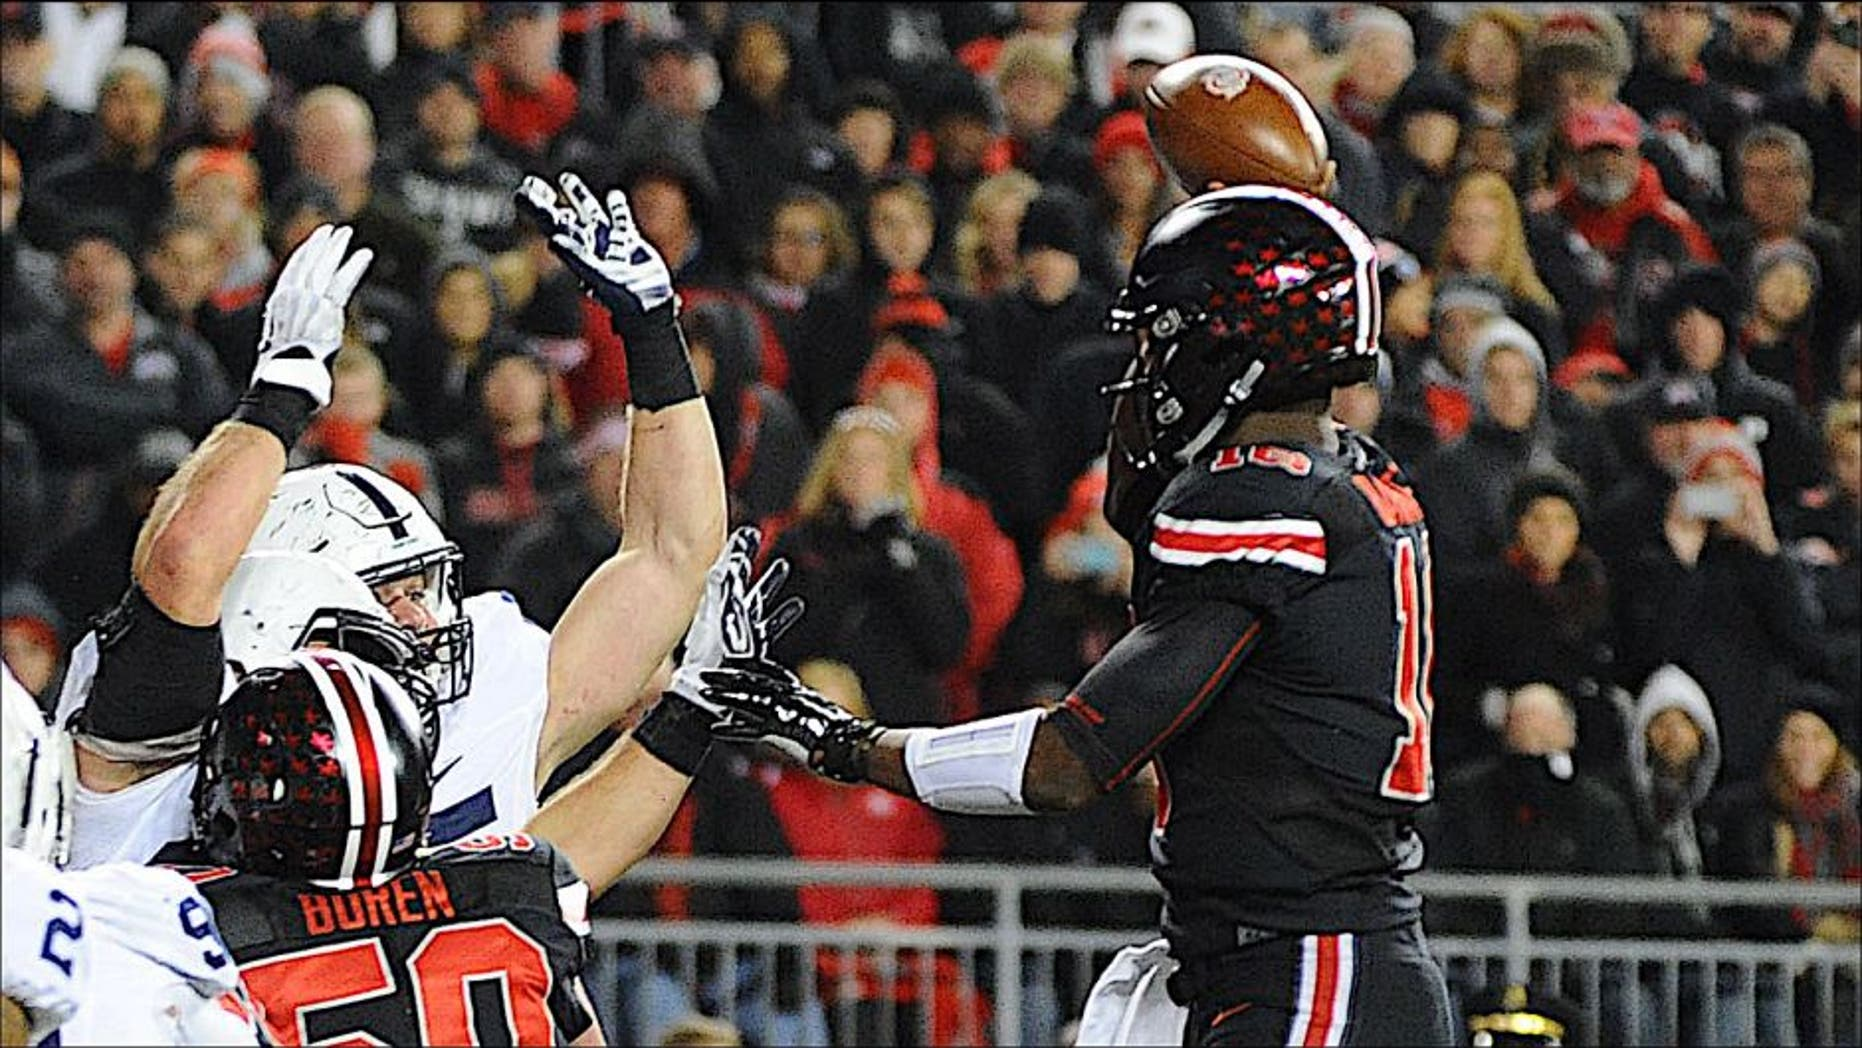 Oct 17, 2015; Columbus, OH, USA; Ohio State Buckeyes quarterback J.T. Barrett (16) throws a touchdown pass in the fourth quarter against the Penn State Nittany Lions at Ohio Stadium. Mandatory Credit: James Lang-USA TODAY Sports